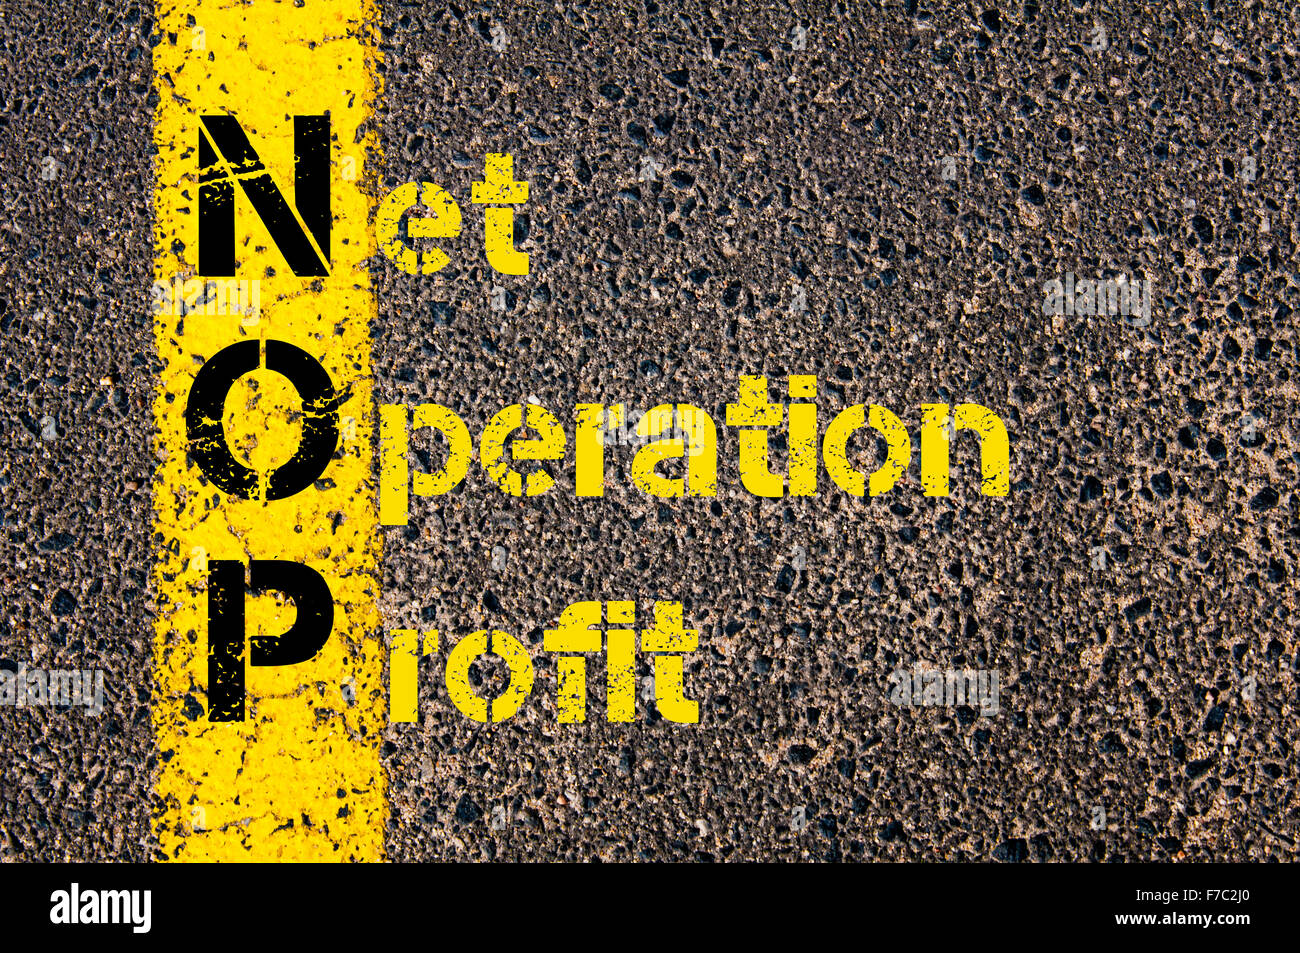 Concept image of Business Acronym NOP as Net Operation Profit written over road marking yellow paint line. - Stock Image